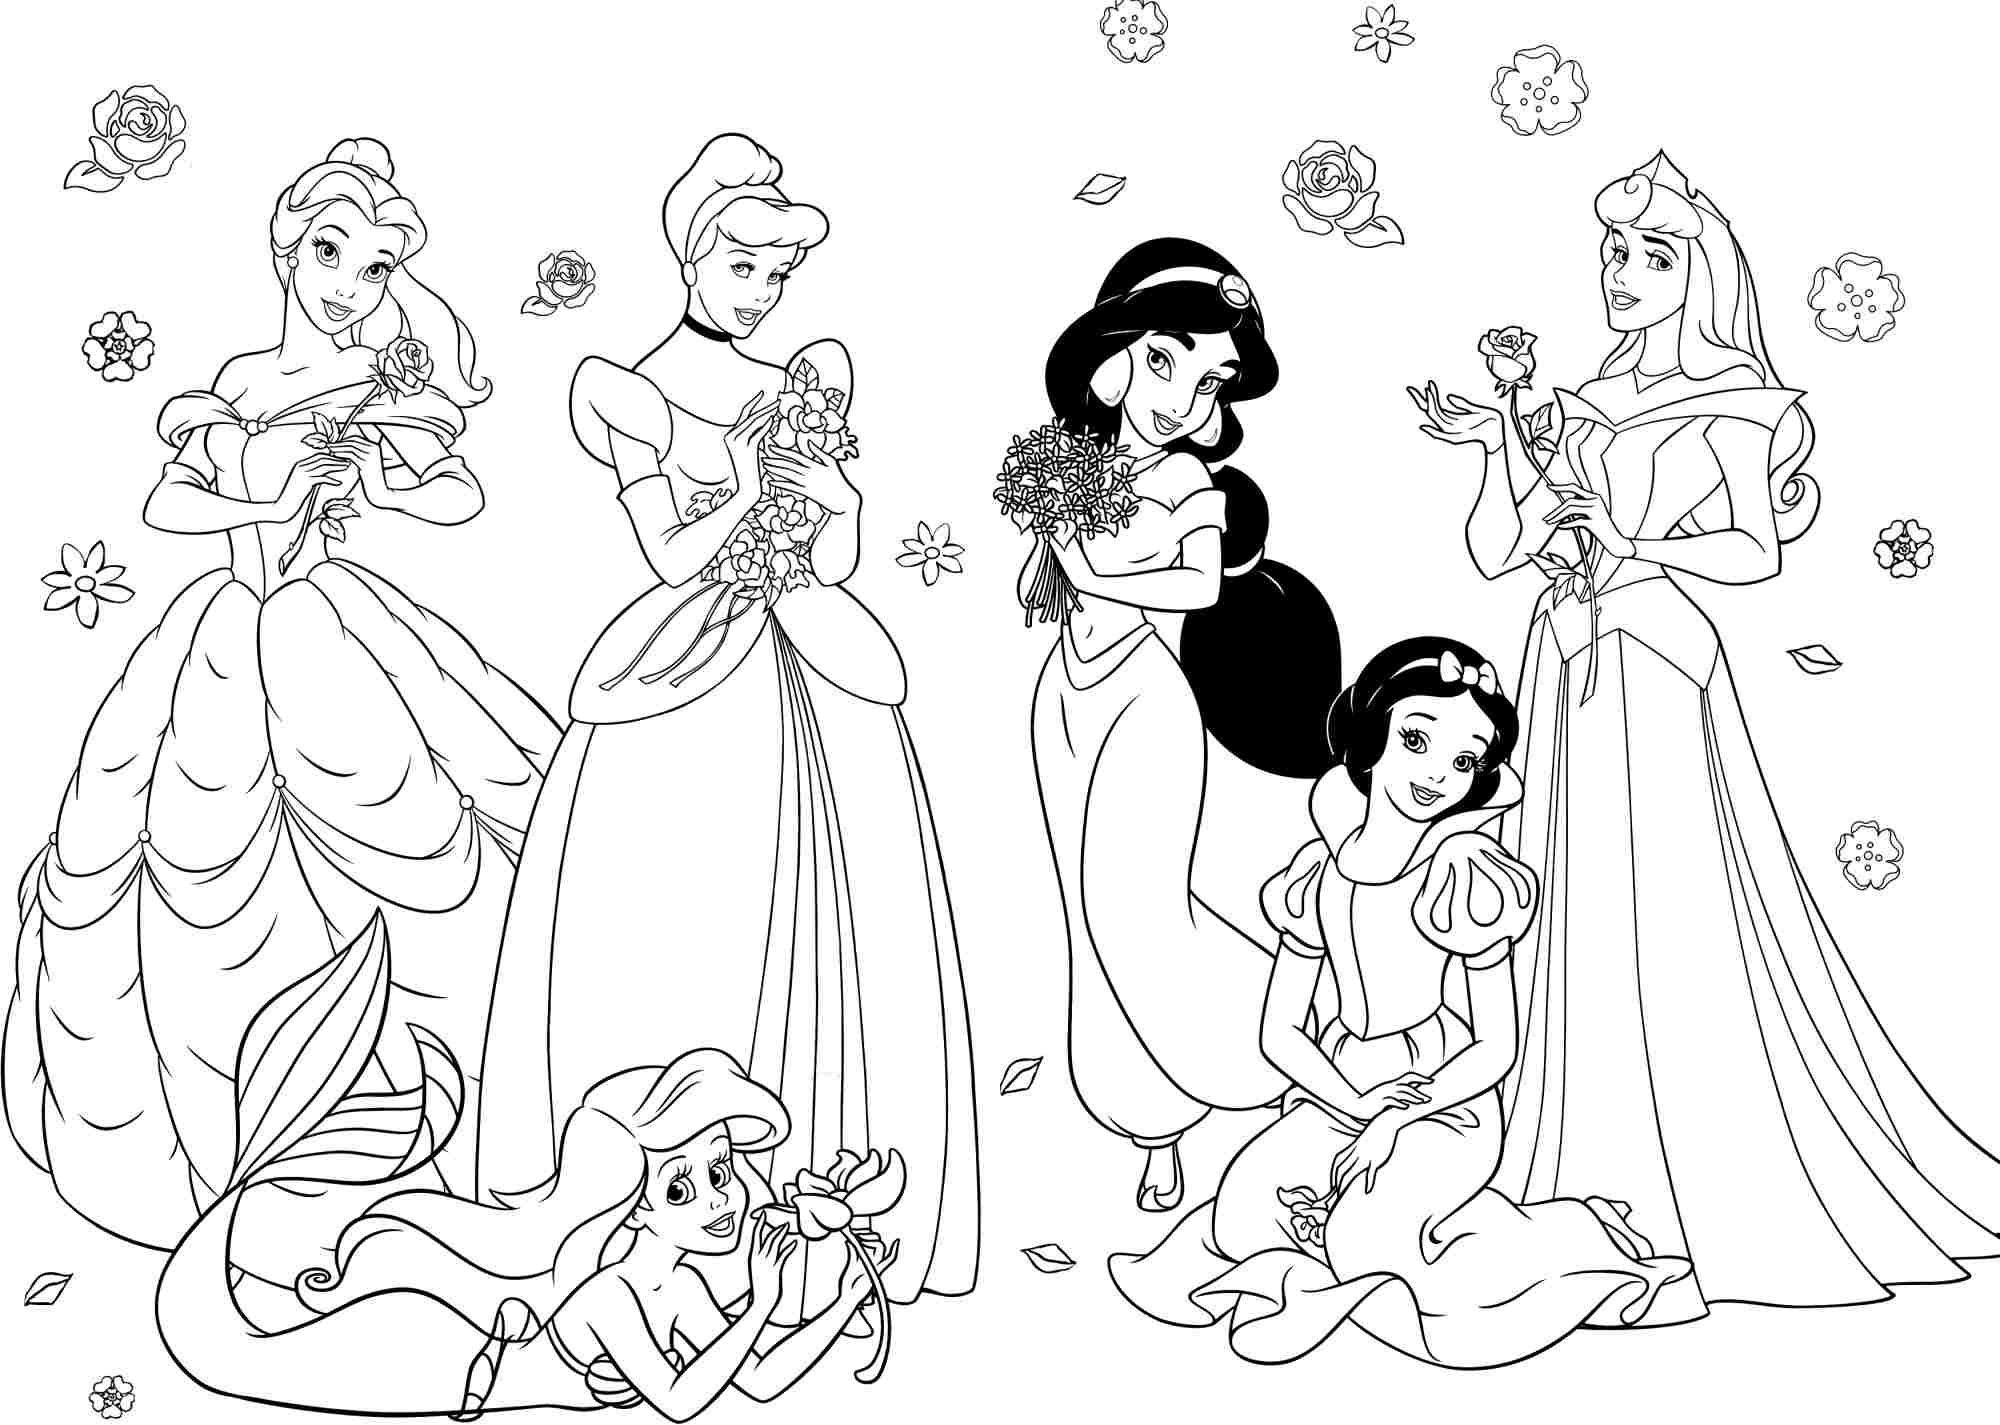 Coloring book disney princess -  Coloring Pages Kids Coloring Pages Disney Princess Wonderful Kids Color Page Kids Creativities Alicas Drawing The